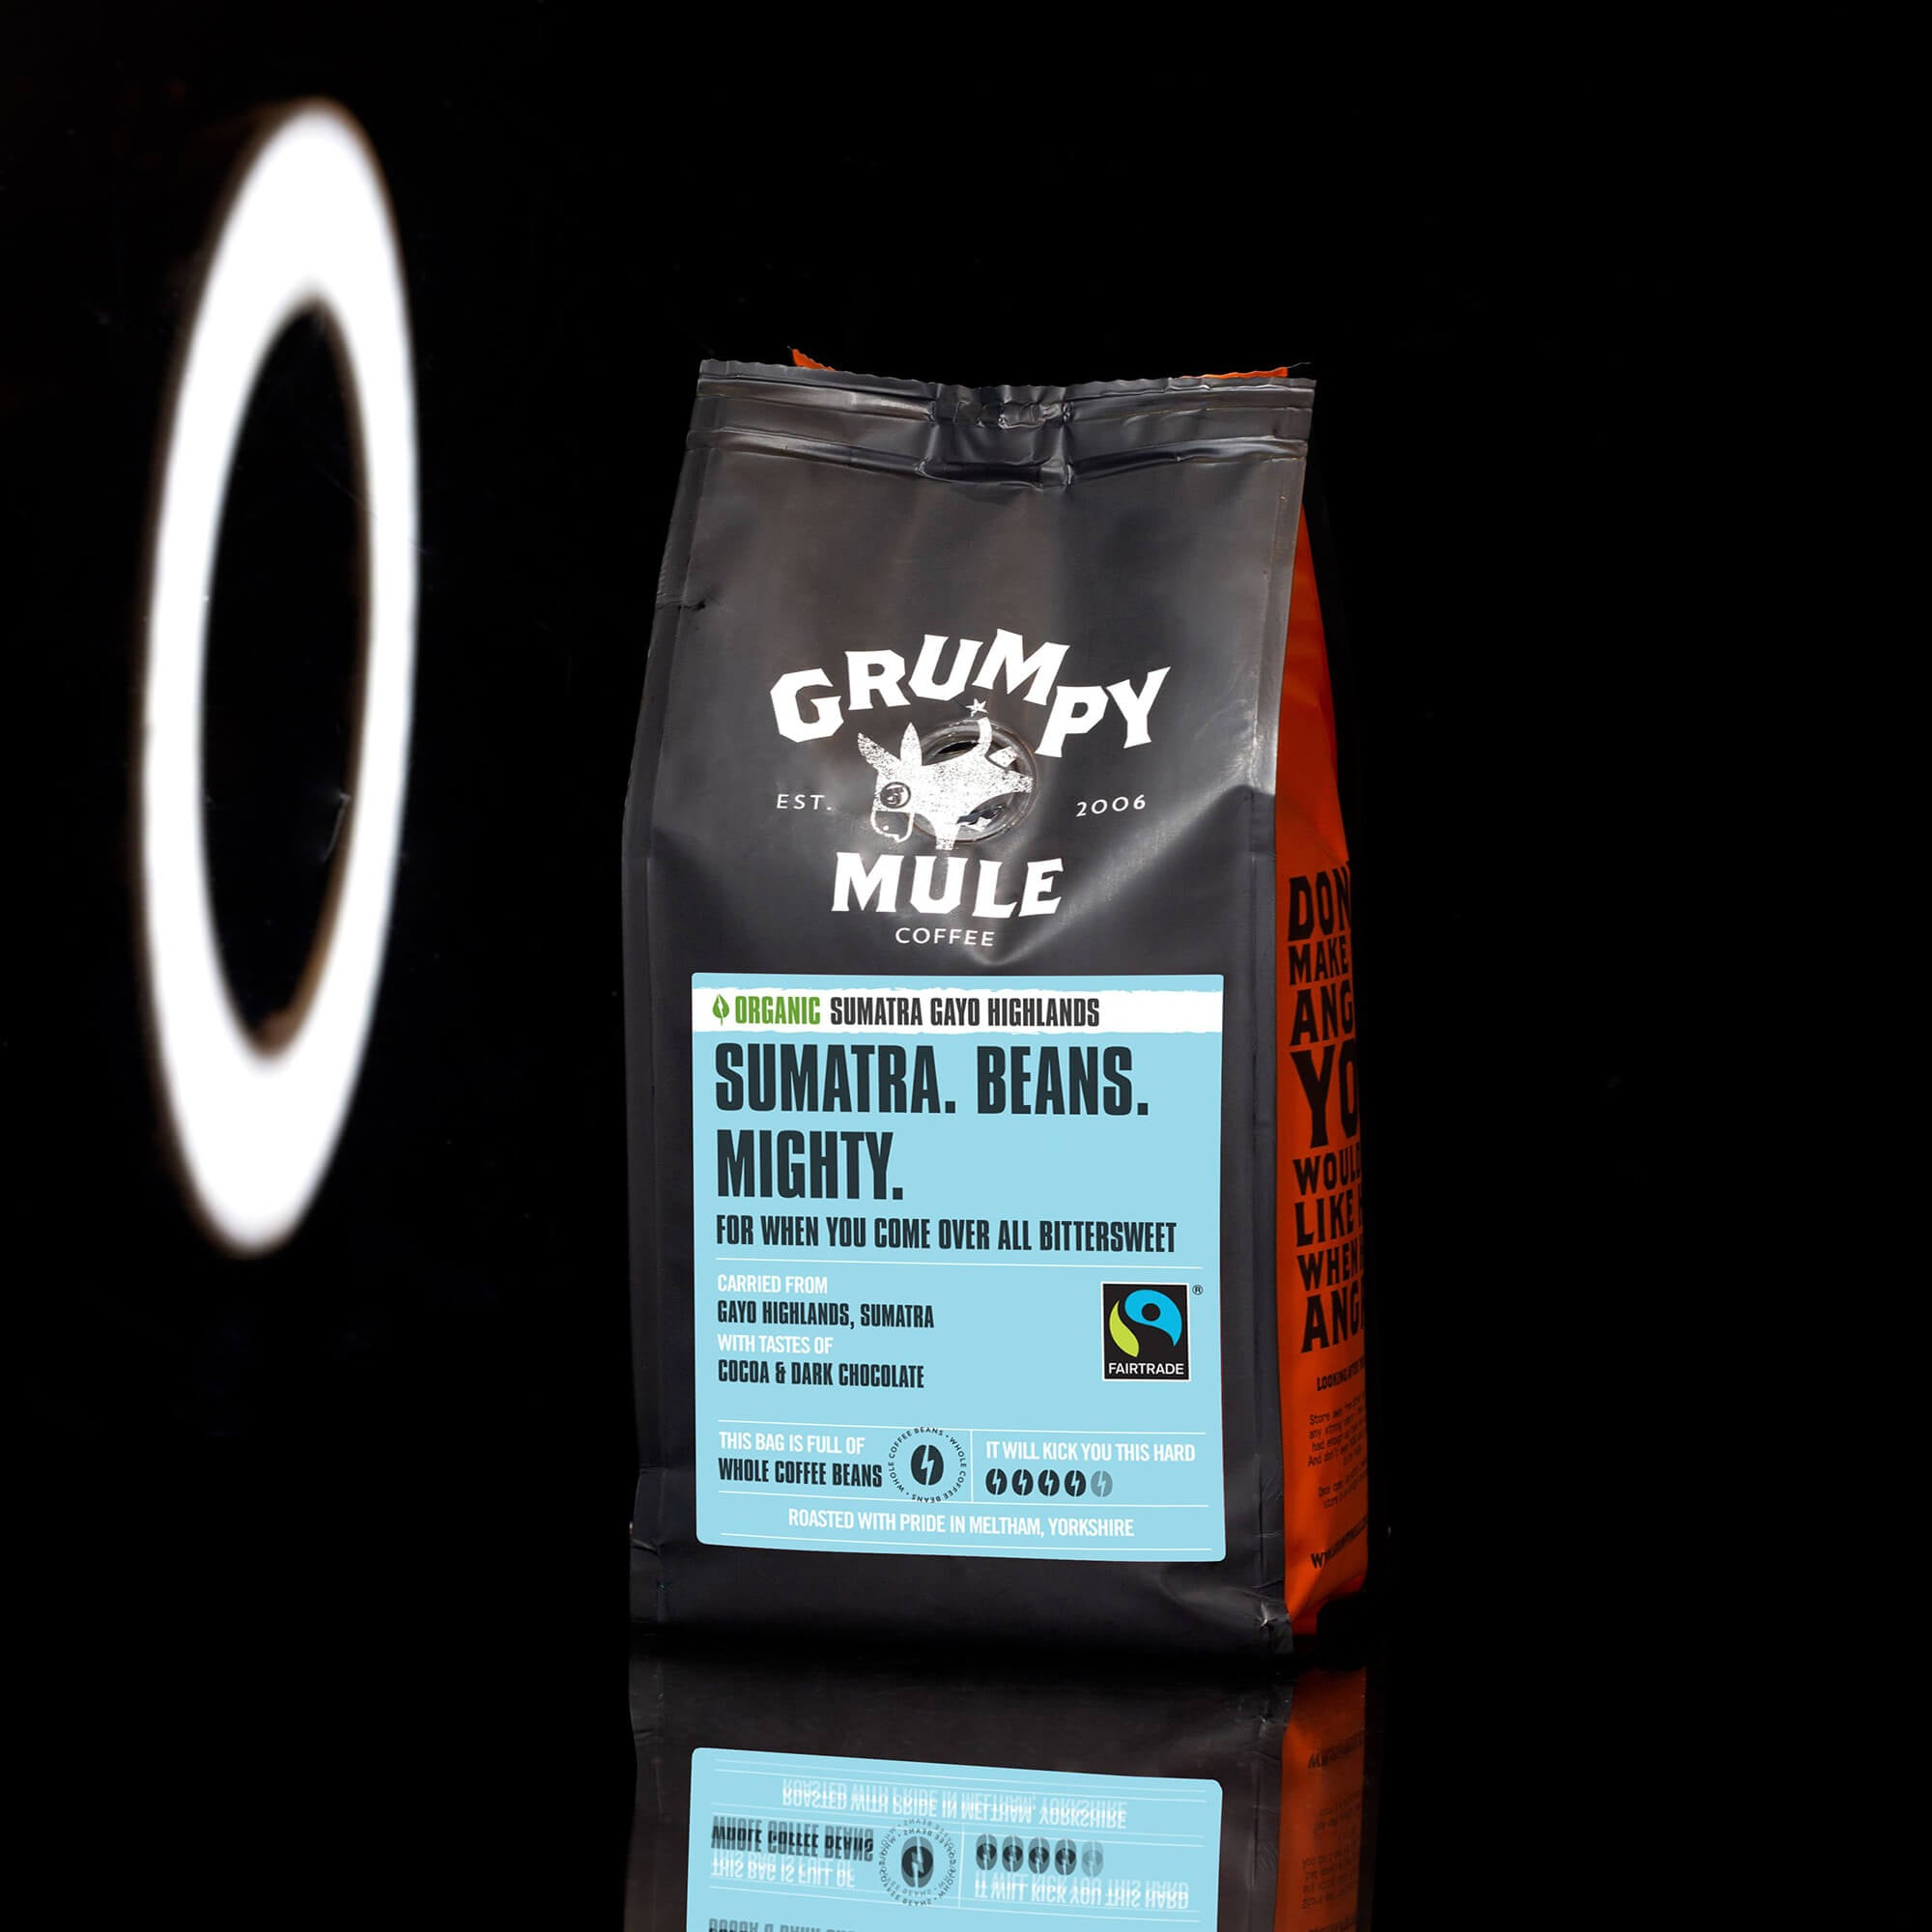 Grumpy Mule Organic Sumatra Ground Gayo Highlands Coffee Beans - Grumpy Mule